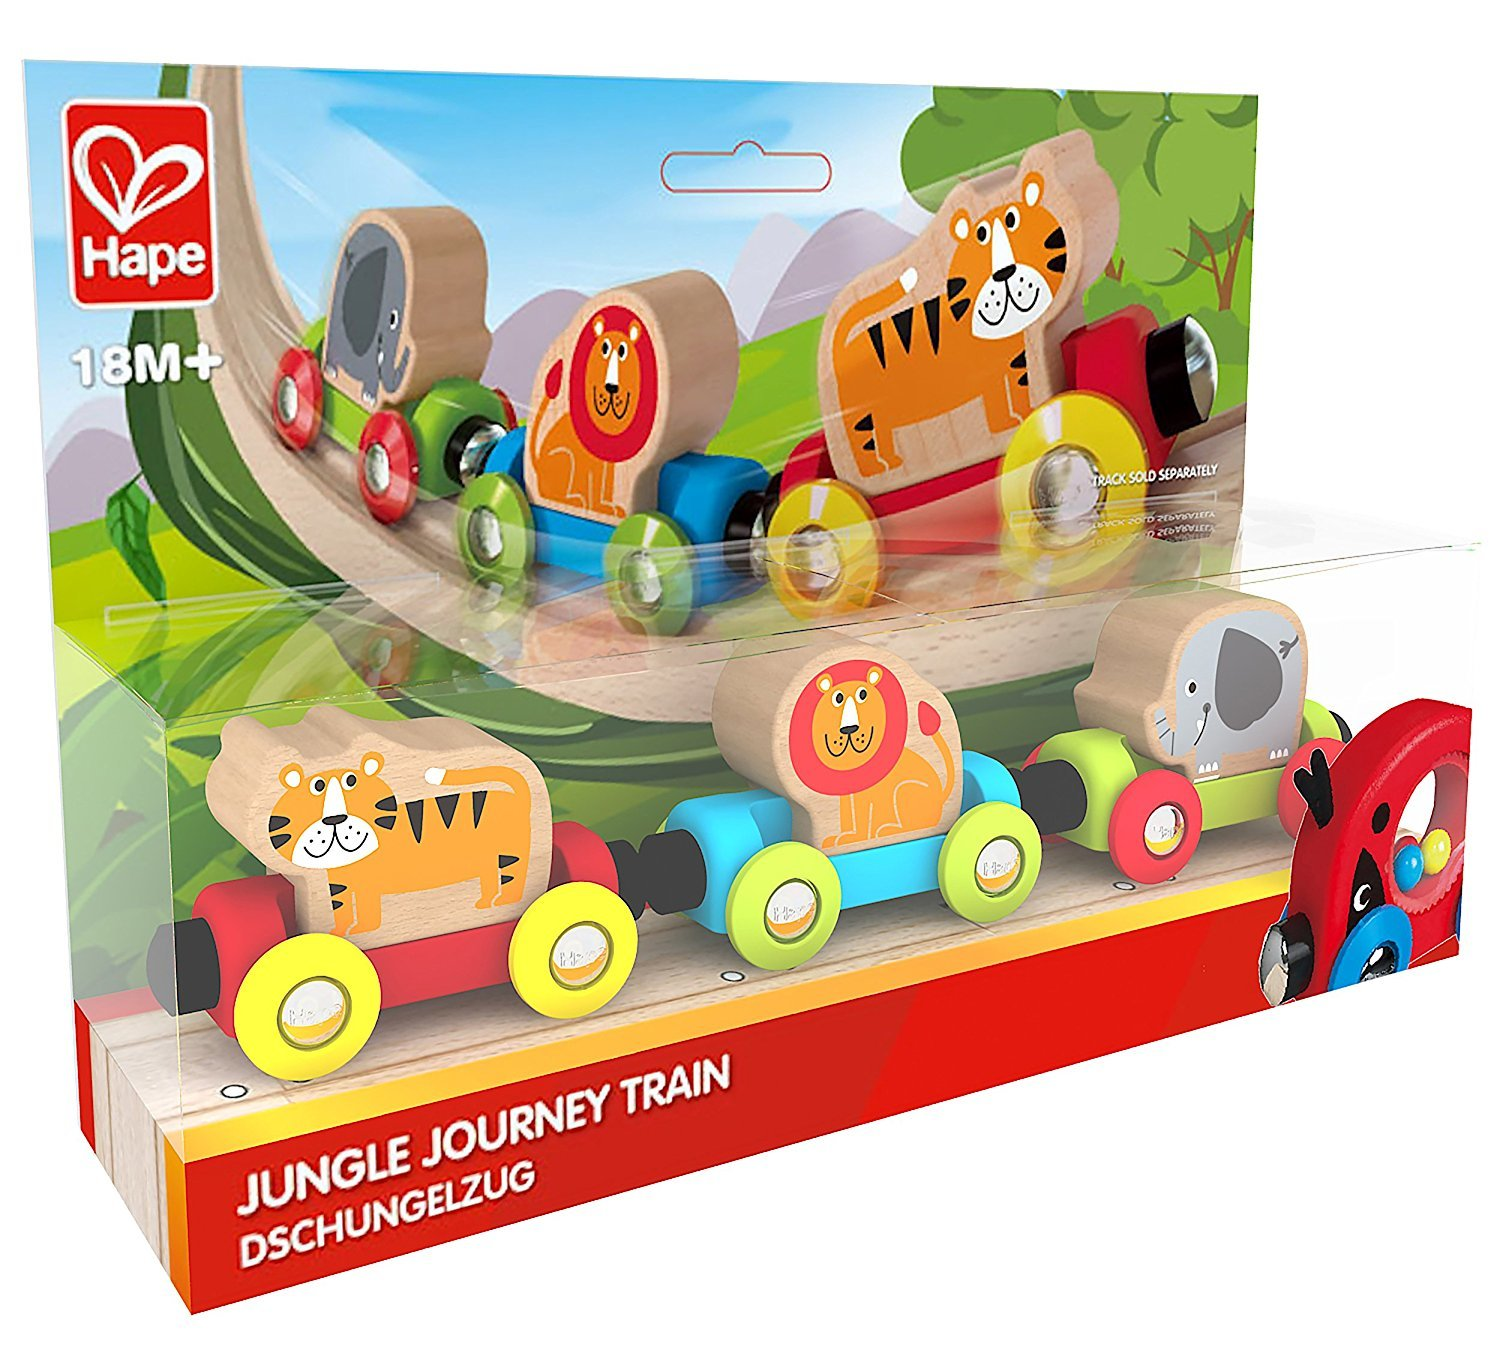 Hape: Jungle Journey Train image